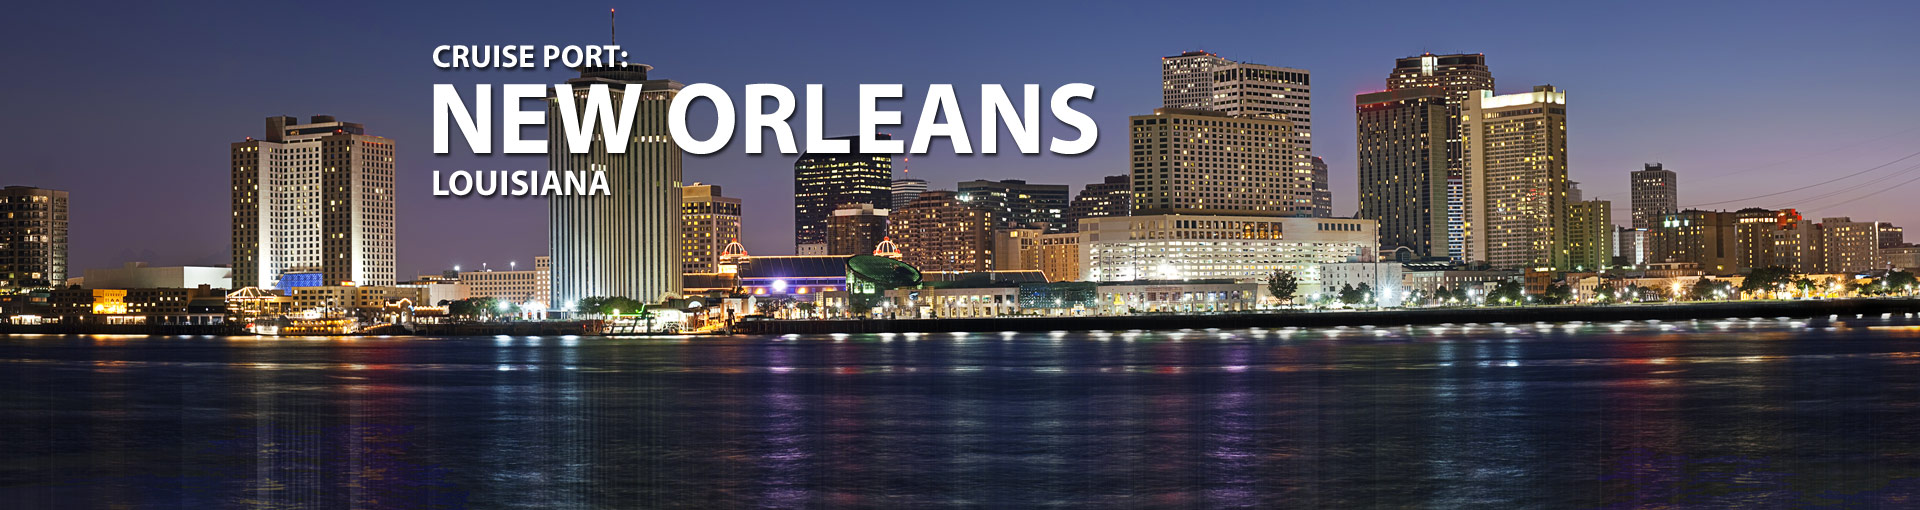 Cruise Port: New Orleans, Louisiana